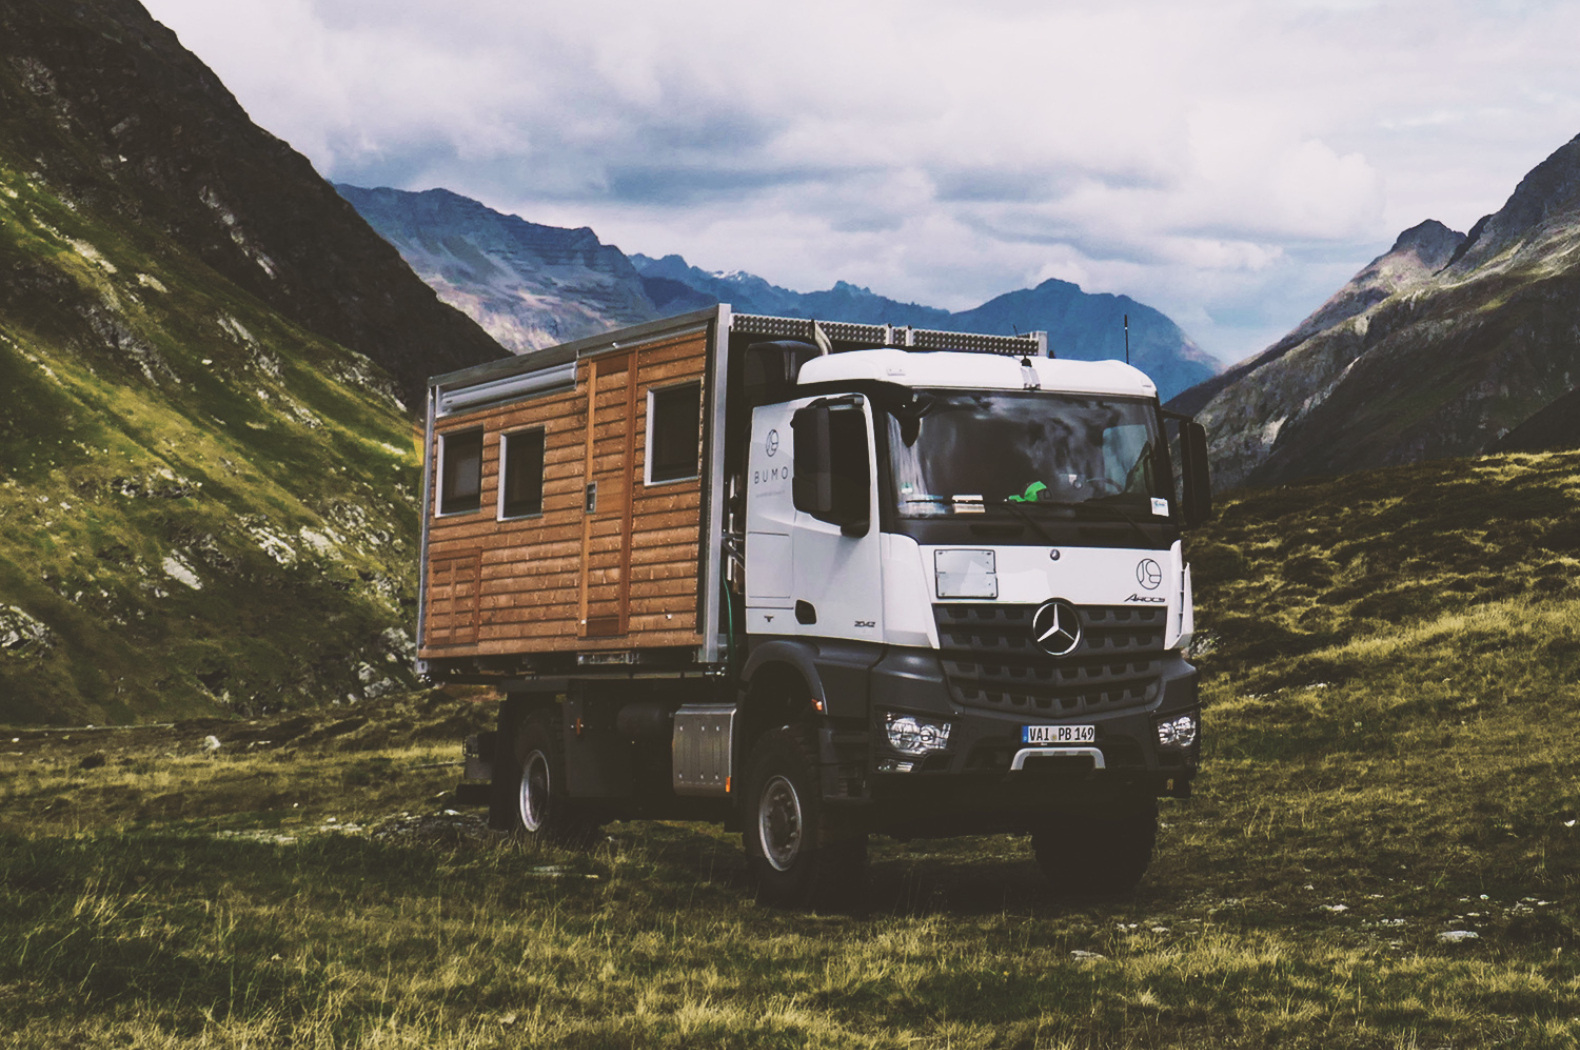 Ultra-rugged, off-grid motorhome is built to go just about anywhere